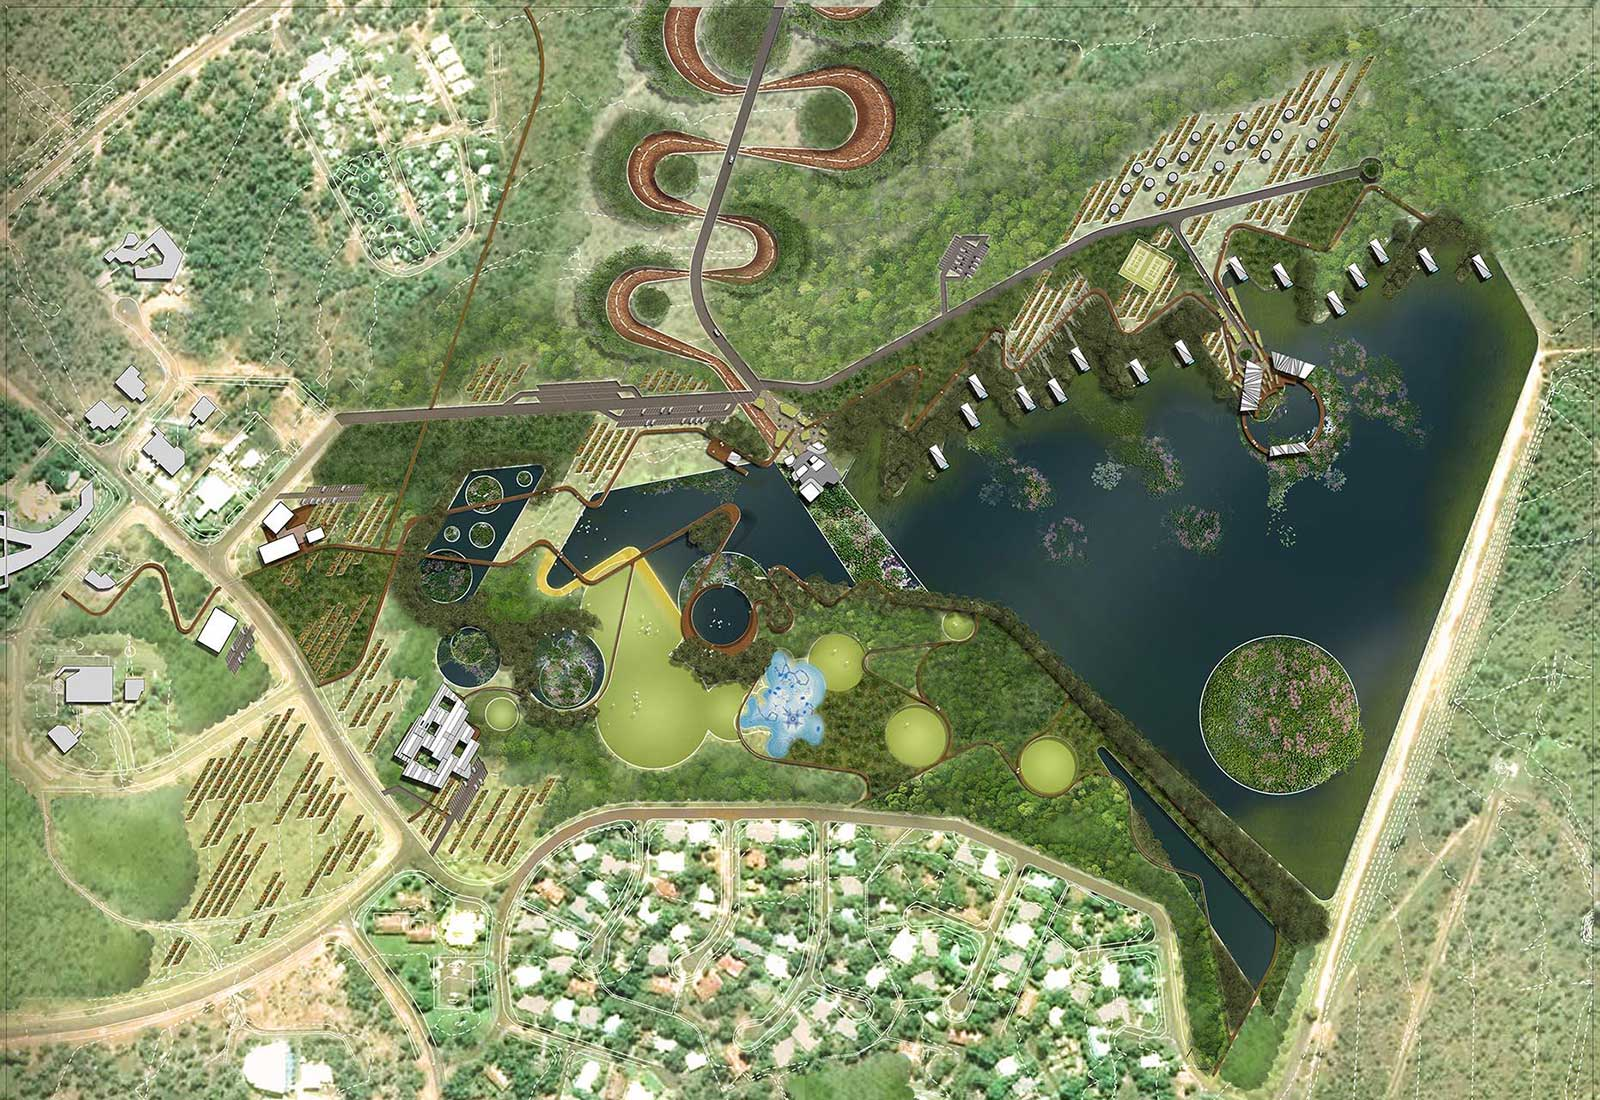 Concept aerial view of Jabiru